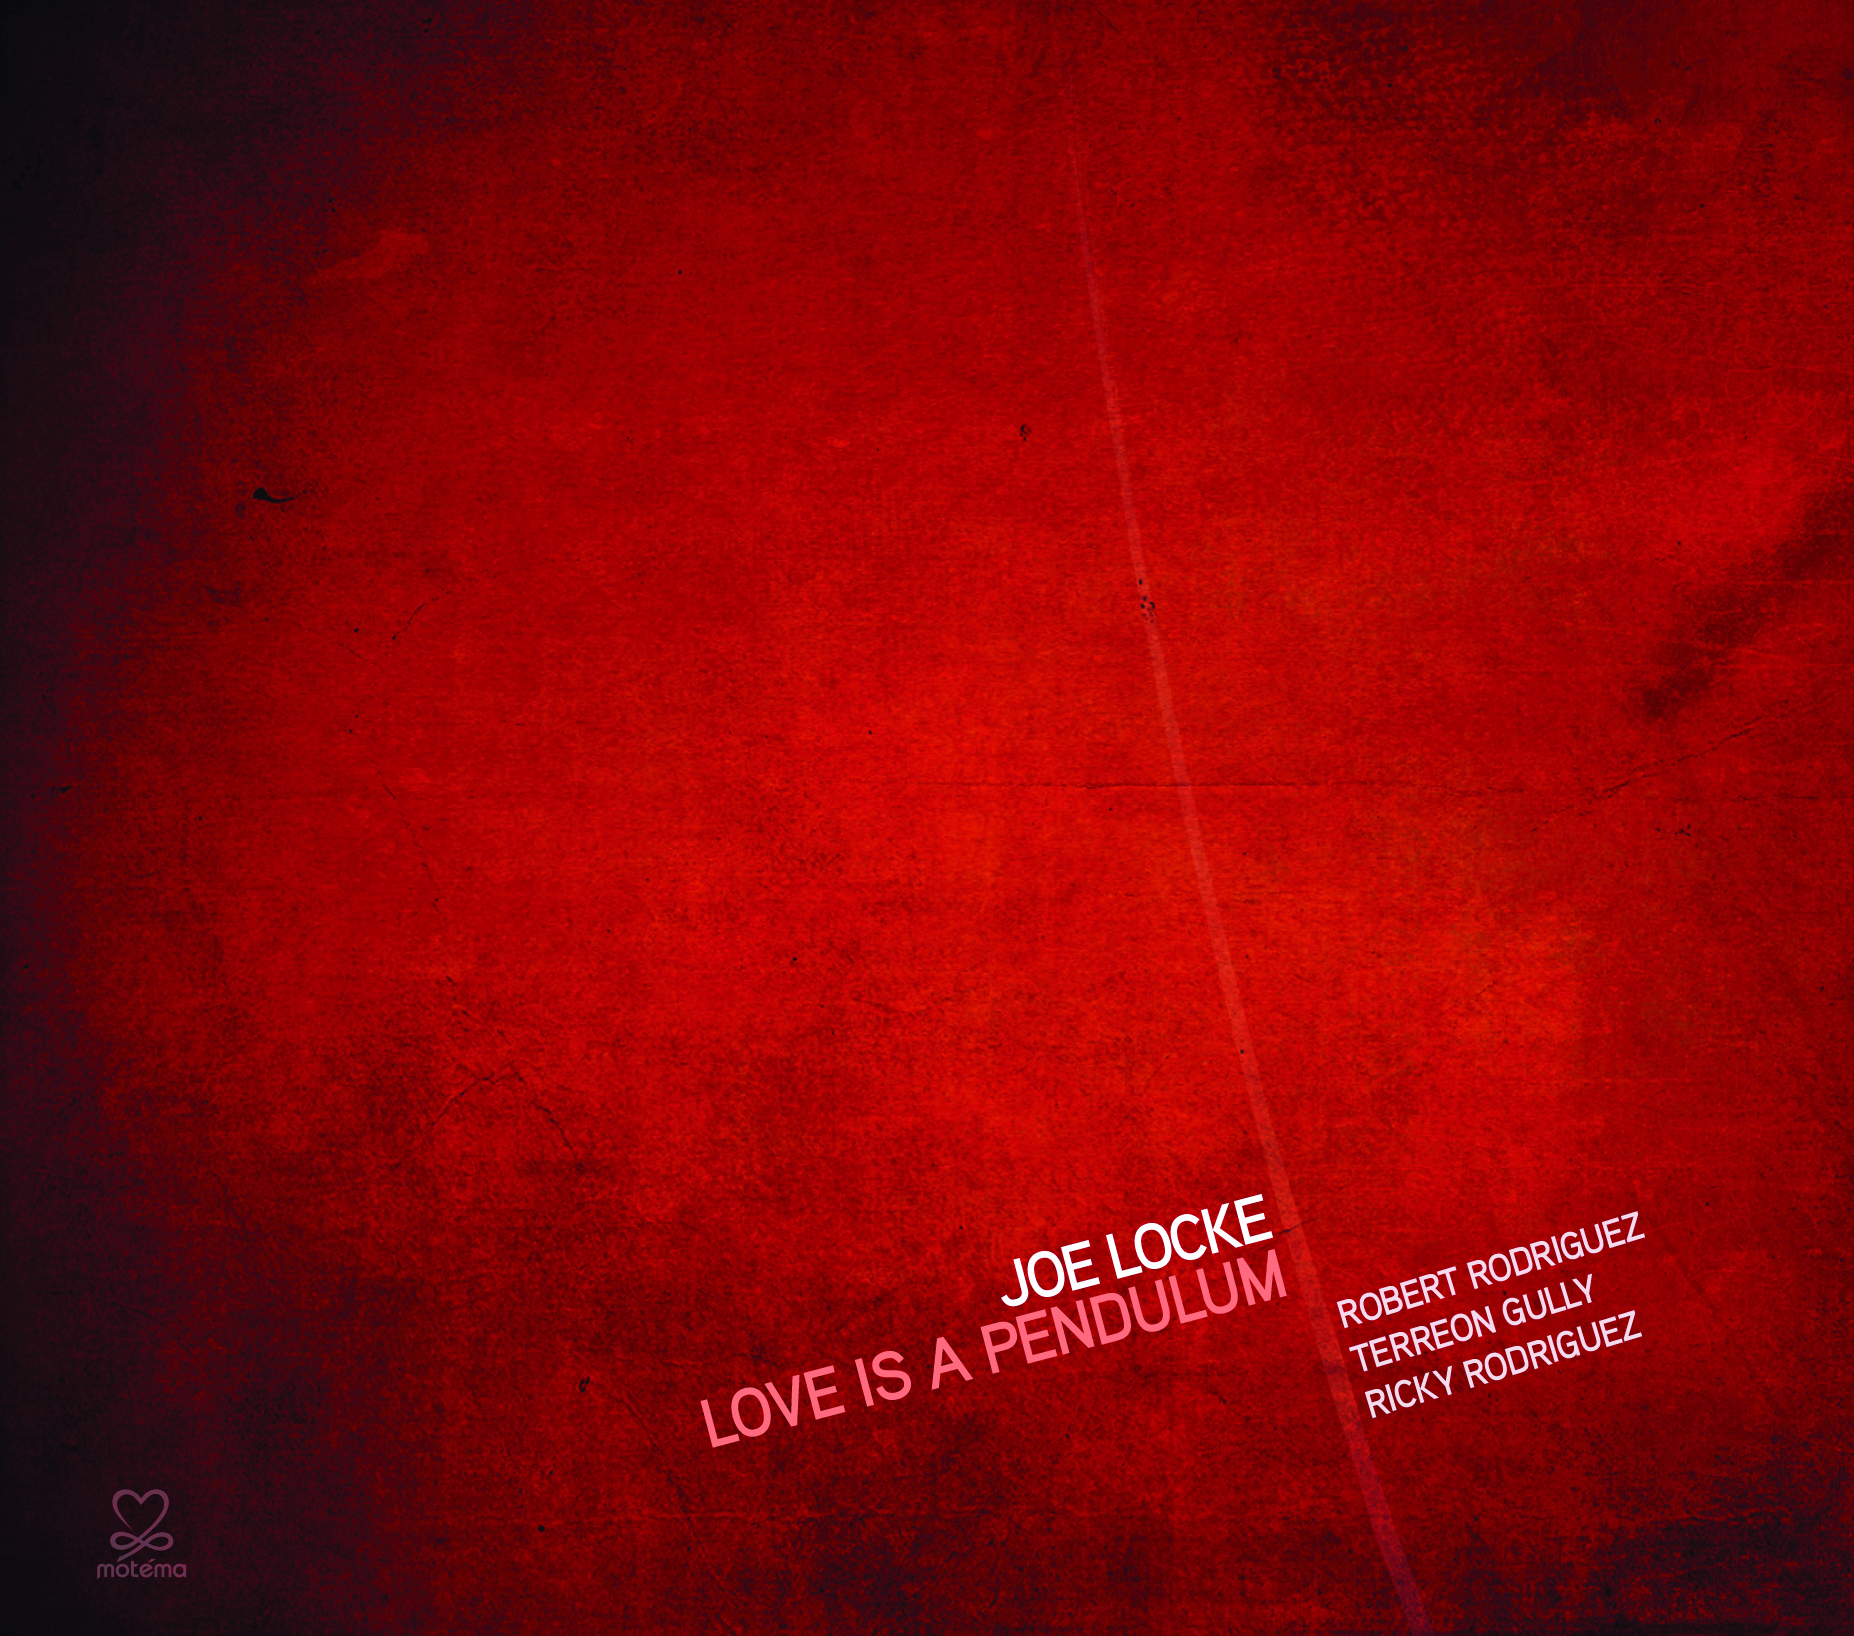 Love Is a Pendulum  by Joe Locke Robert Rodriguez  (piano) ,   Ricardo Rodriguez  (bass) , Terreon Gully  (drums) ,   Rosario Giuliani, Donny McCaslin  (saxes) , Paul Bollenback  (guitar) , Victor Provost  (steel pans) , Theo Bleckmann  (vocals) (Motéma Music, May 2015)